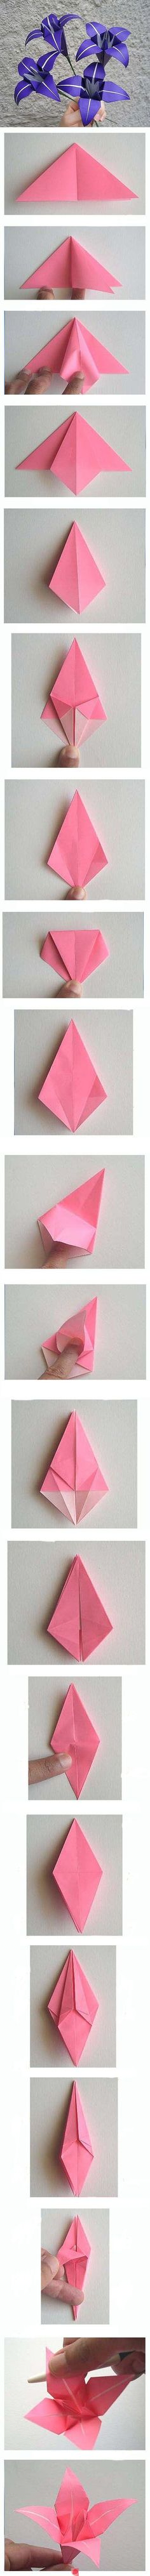 I actually know how to fold these n made a flower ball with them… Origami lilies. I actually know how to fold these n made a flower ball with them. Very beautiful paper flower Diy Origami, Origami And Kirigami, Origami Tutorial, Origami Paper, Diy Paper, Paper Art, Paper Crafts, Oragami, Origami Ideas